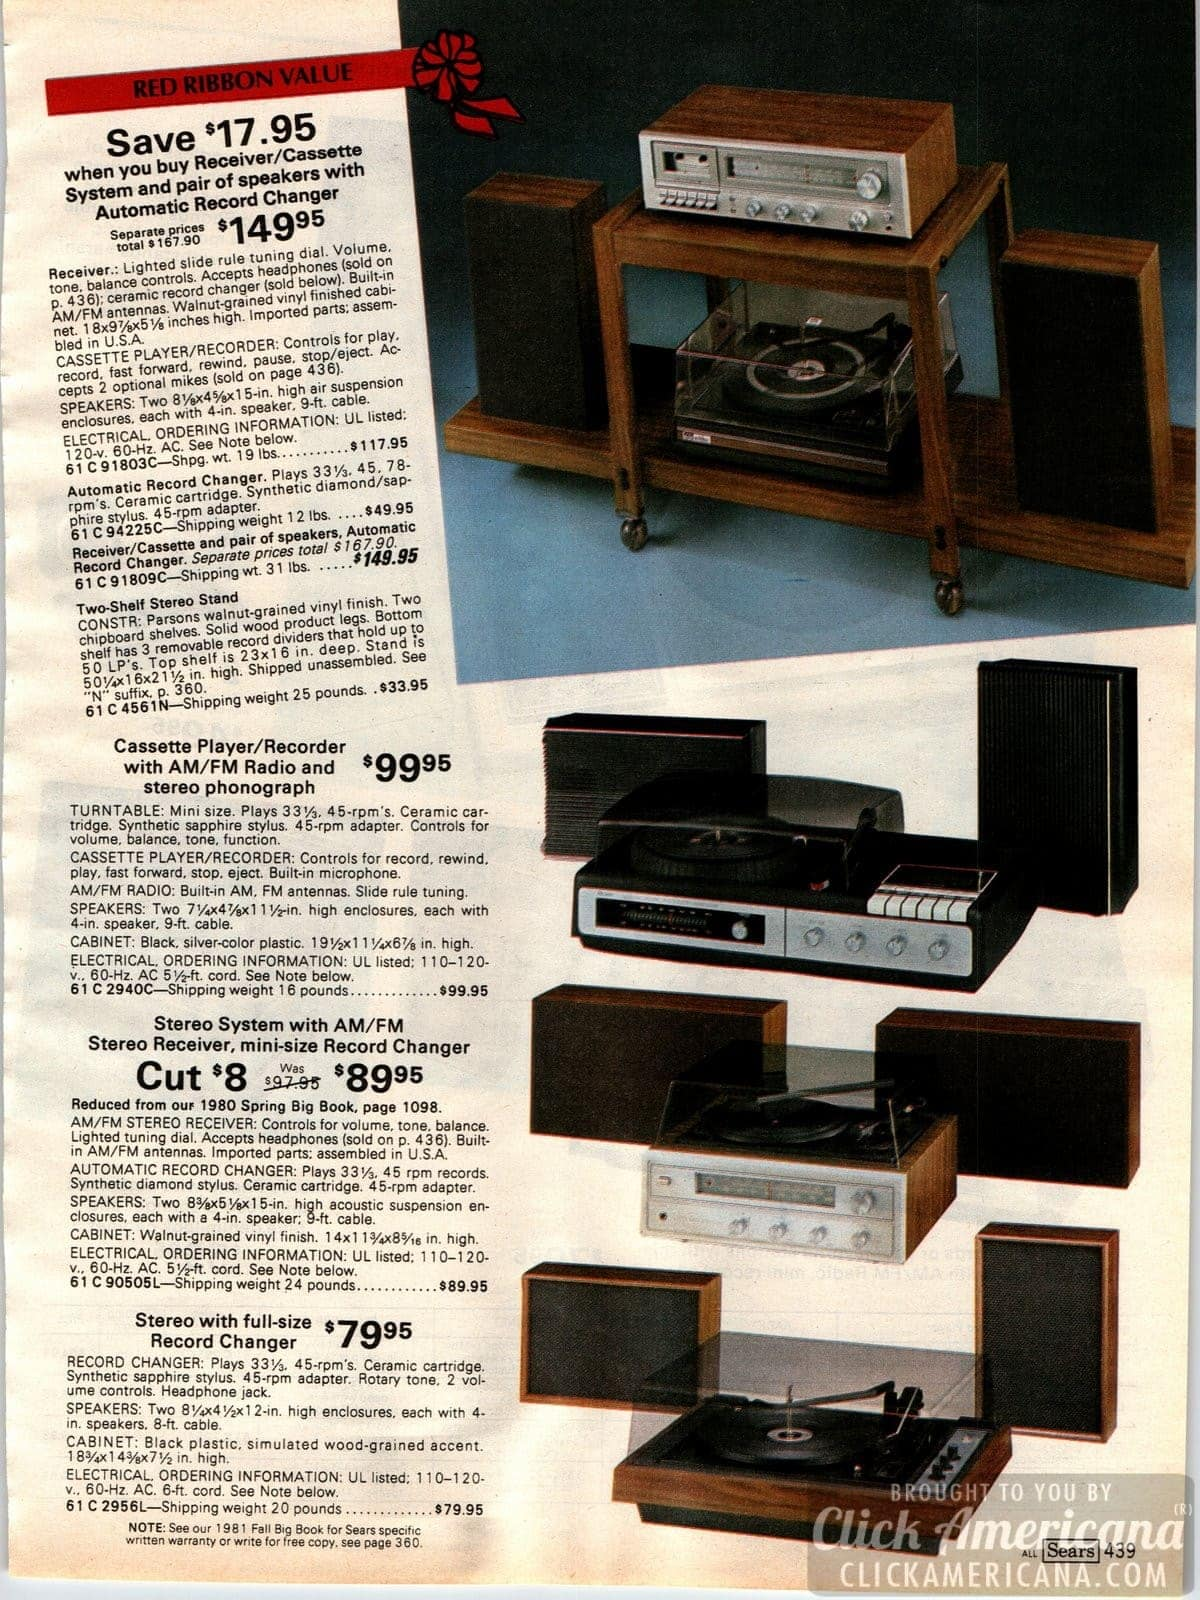 Receiver and cassette audio systems, with speakers and automatic record changers